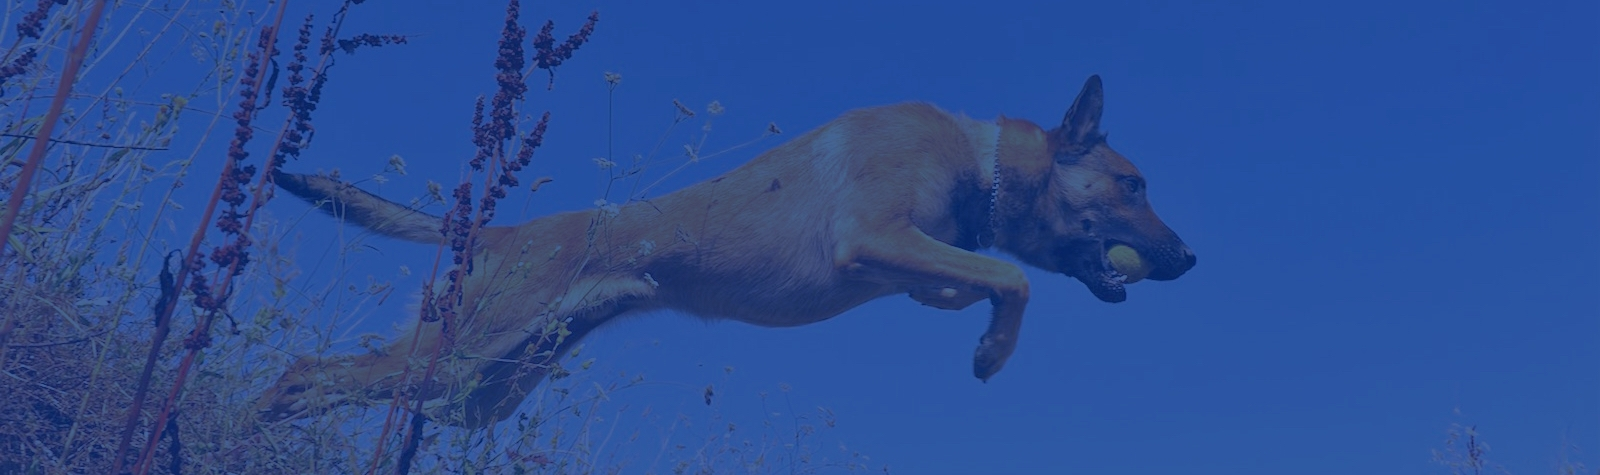 Citadel Protection Dogs LLC (@citadelk9) Cover Image